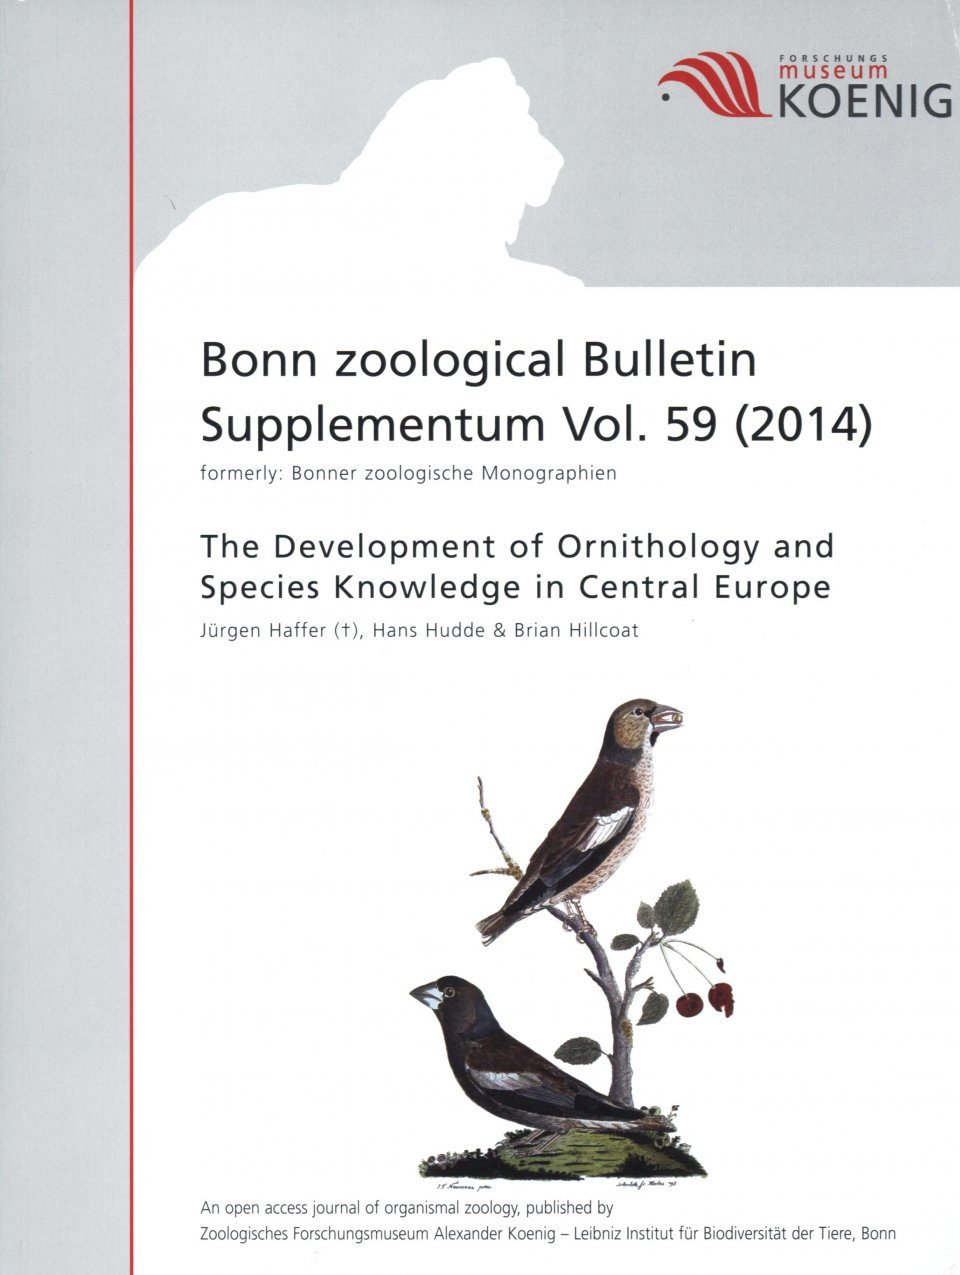 The Development of Ornithology and Species Knowledge in Central Europe